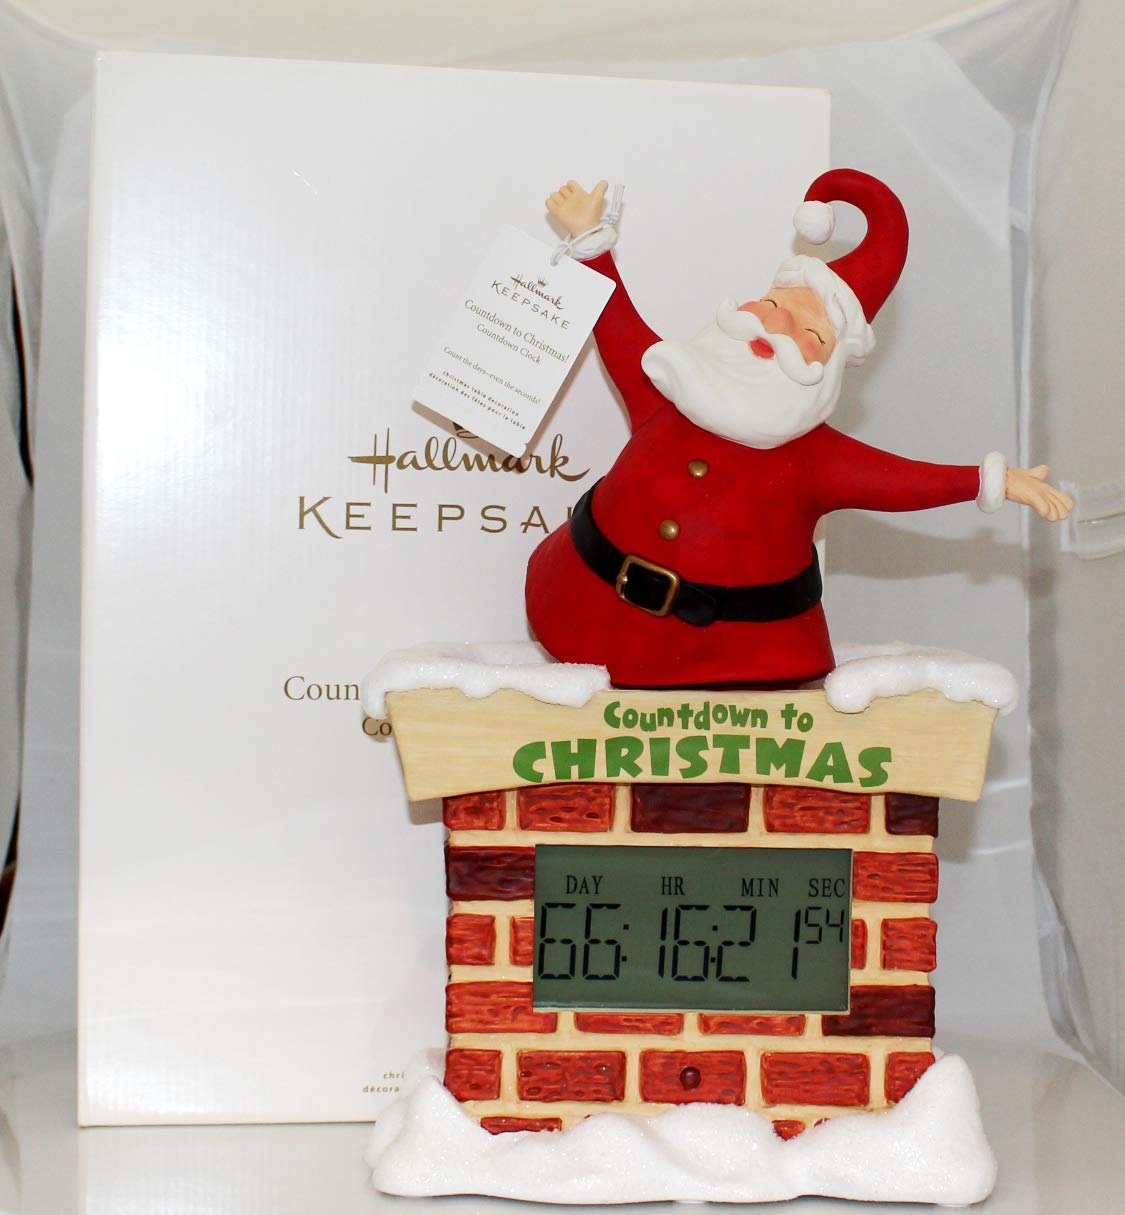 Countdown To Christmas Clock.Hallmark Christmas Large Countdown To Christmas Santa Tabletop Decoration